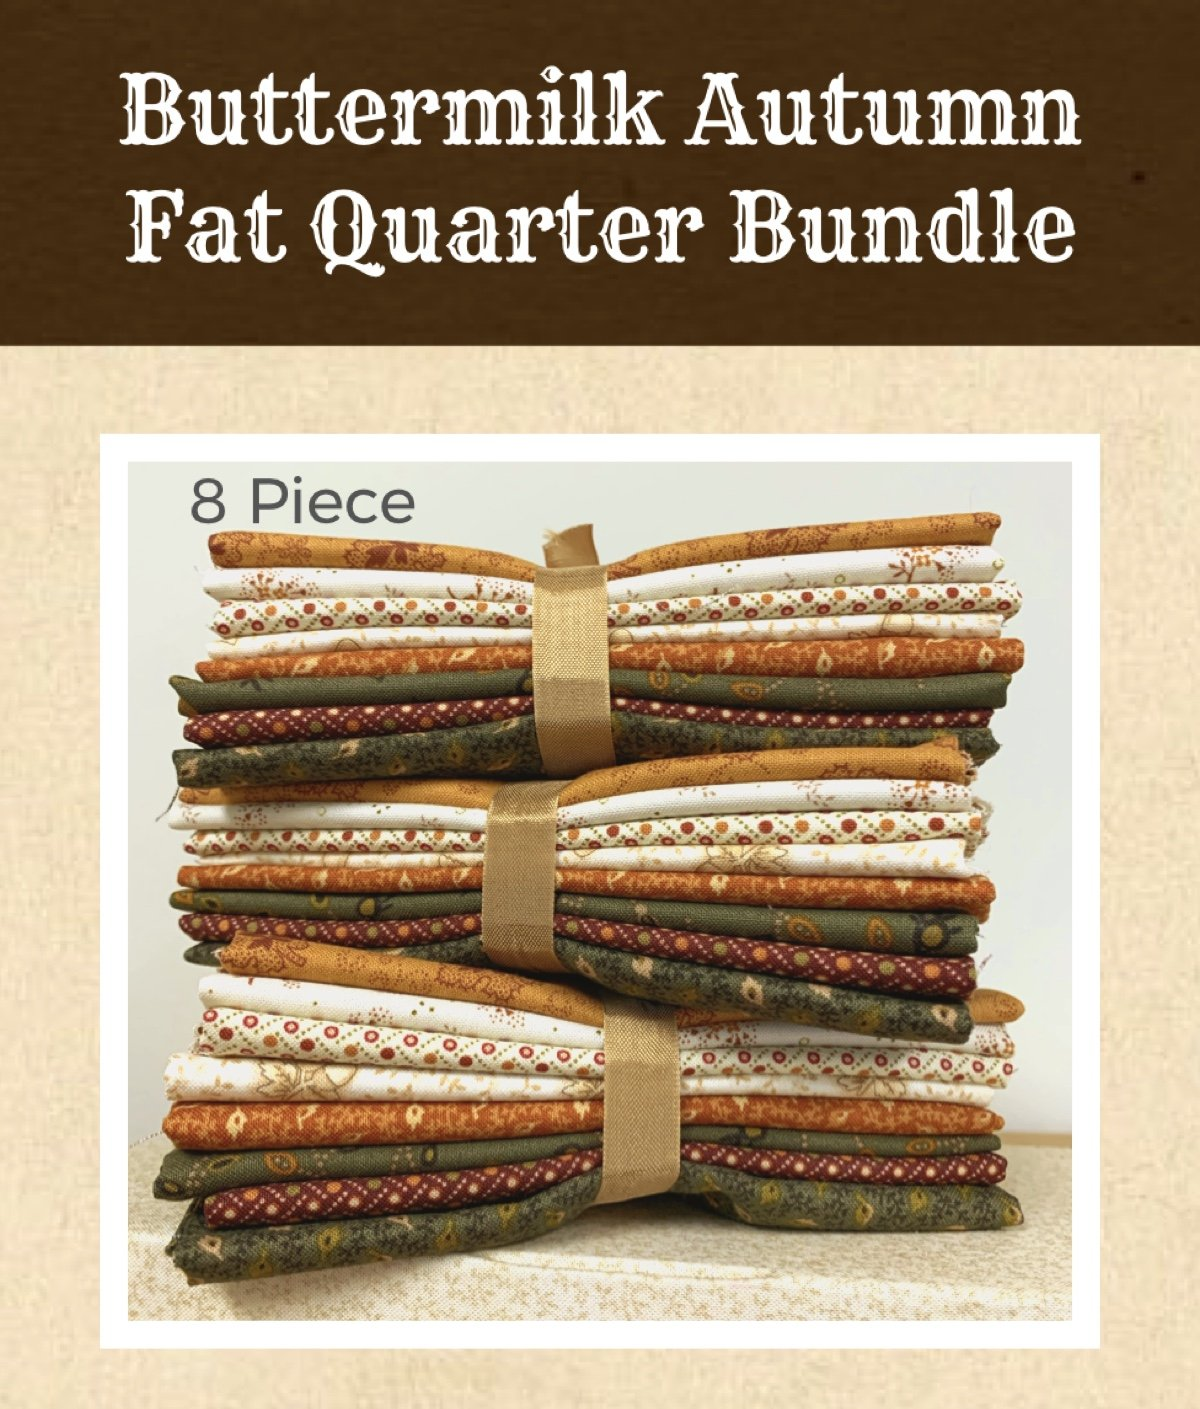 Buttermilk Autumn Fat Quarter Bundle * 8 Piece